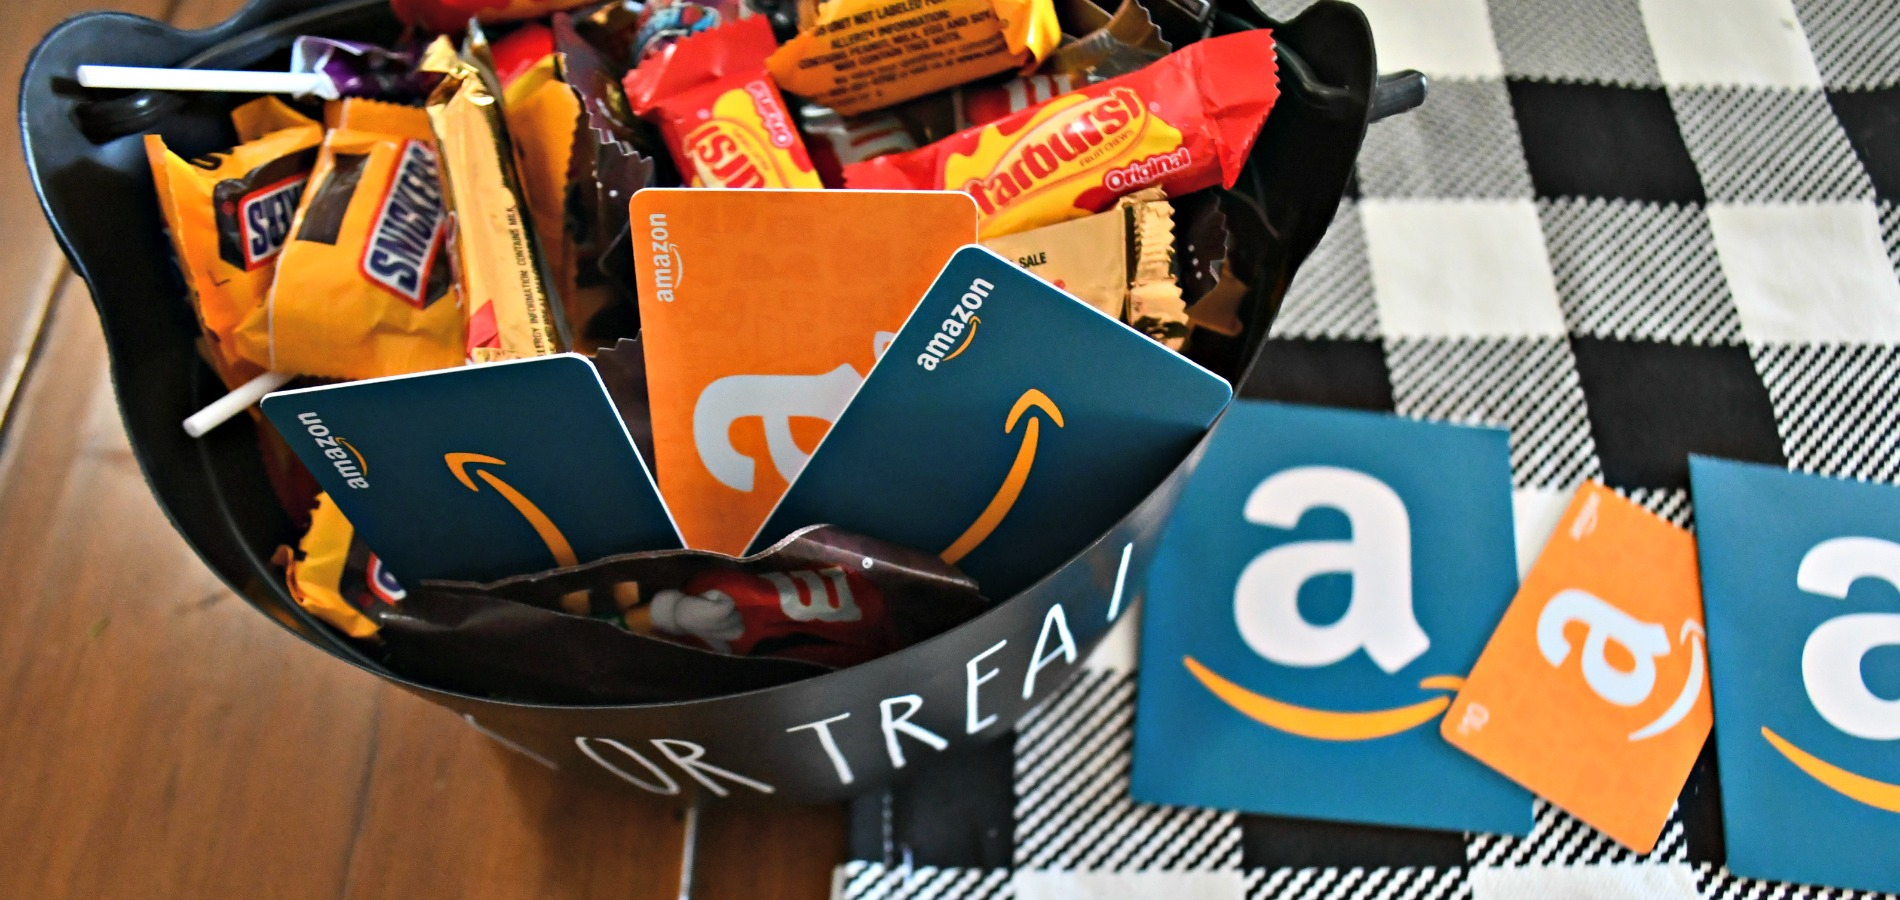 share your favorite products and you could win an Amazon gift card – Trick or Treat basket with candy and Amazon gift cards